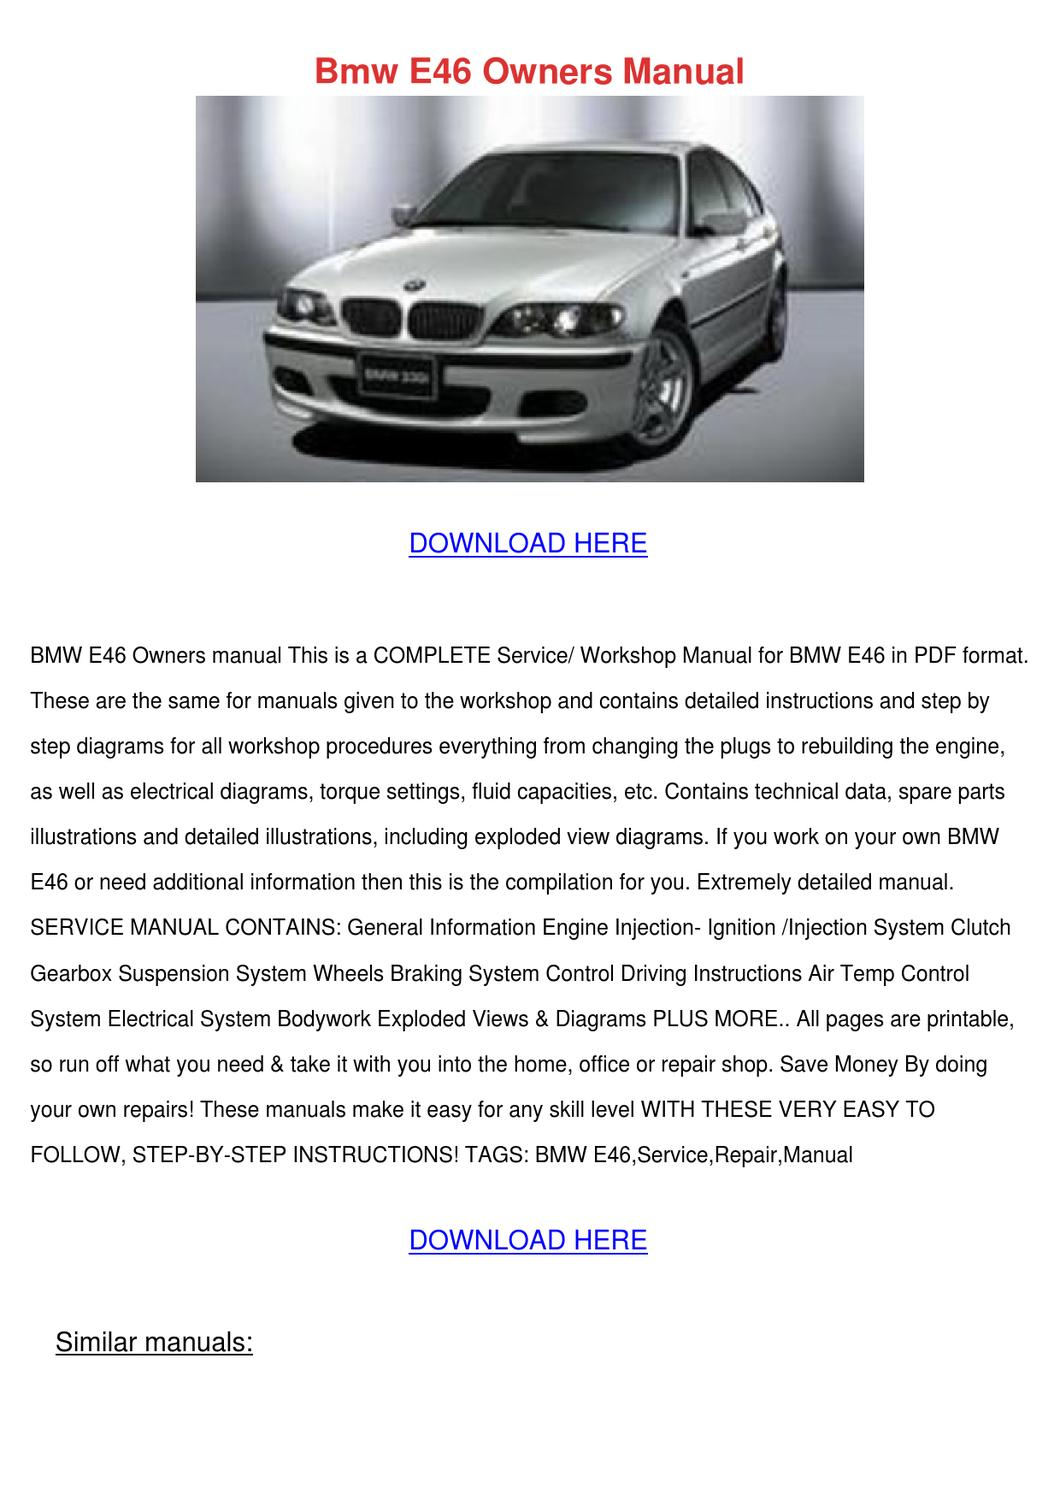 Bmw E46 Owners Manual by GraceFincher - issuu